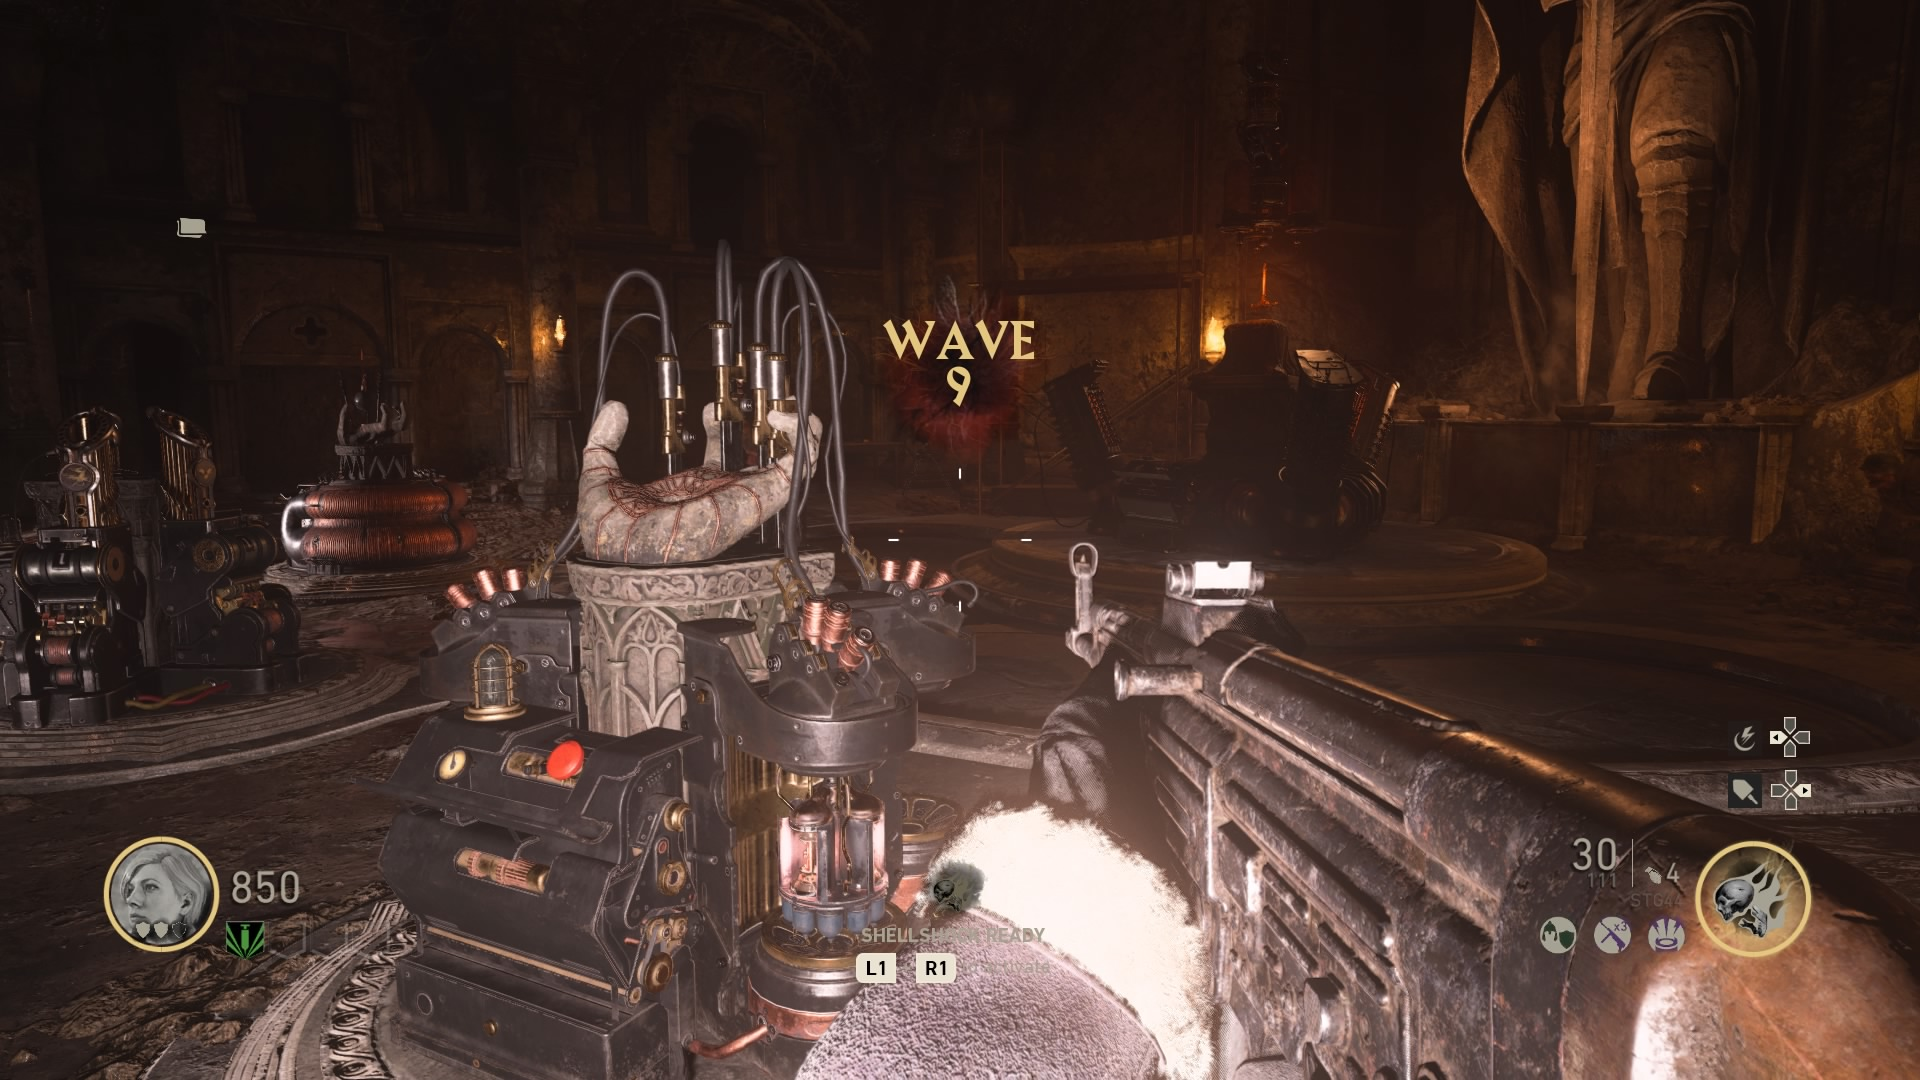 Call Of Duty Ww2 Zombies True Easter Egg Guide Hardcore Circuit Will Makes Things Walkthrough Gameranx